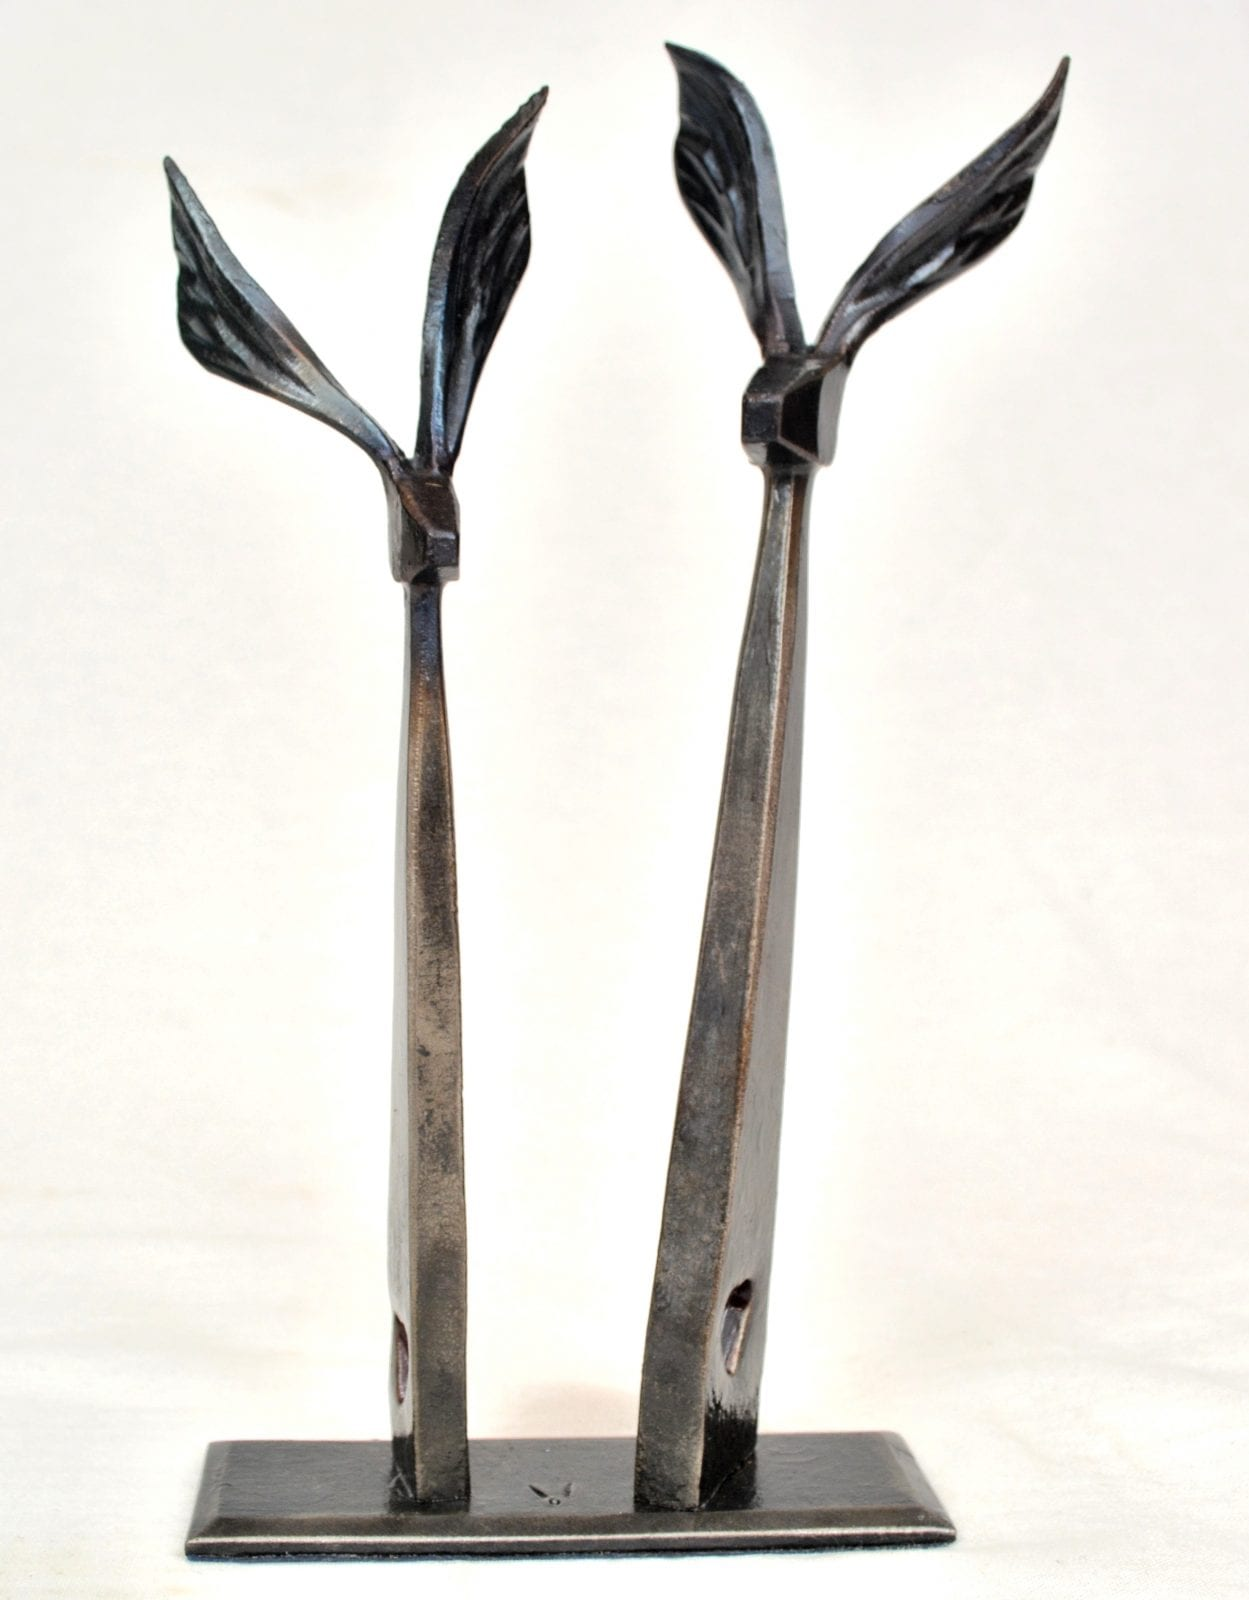 Hare, Hares, Forged, Hand Made, Bespoke, Interior, Anniversary, Gift, Present, Blacksmith, Art